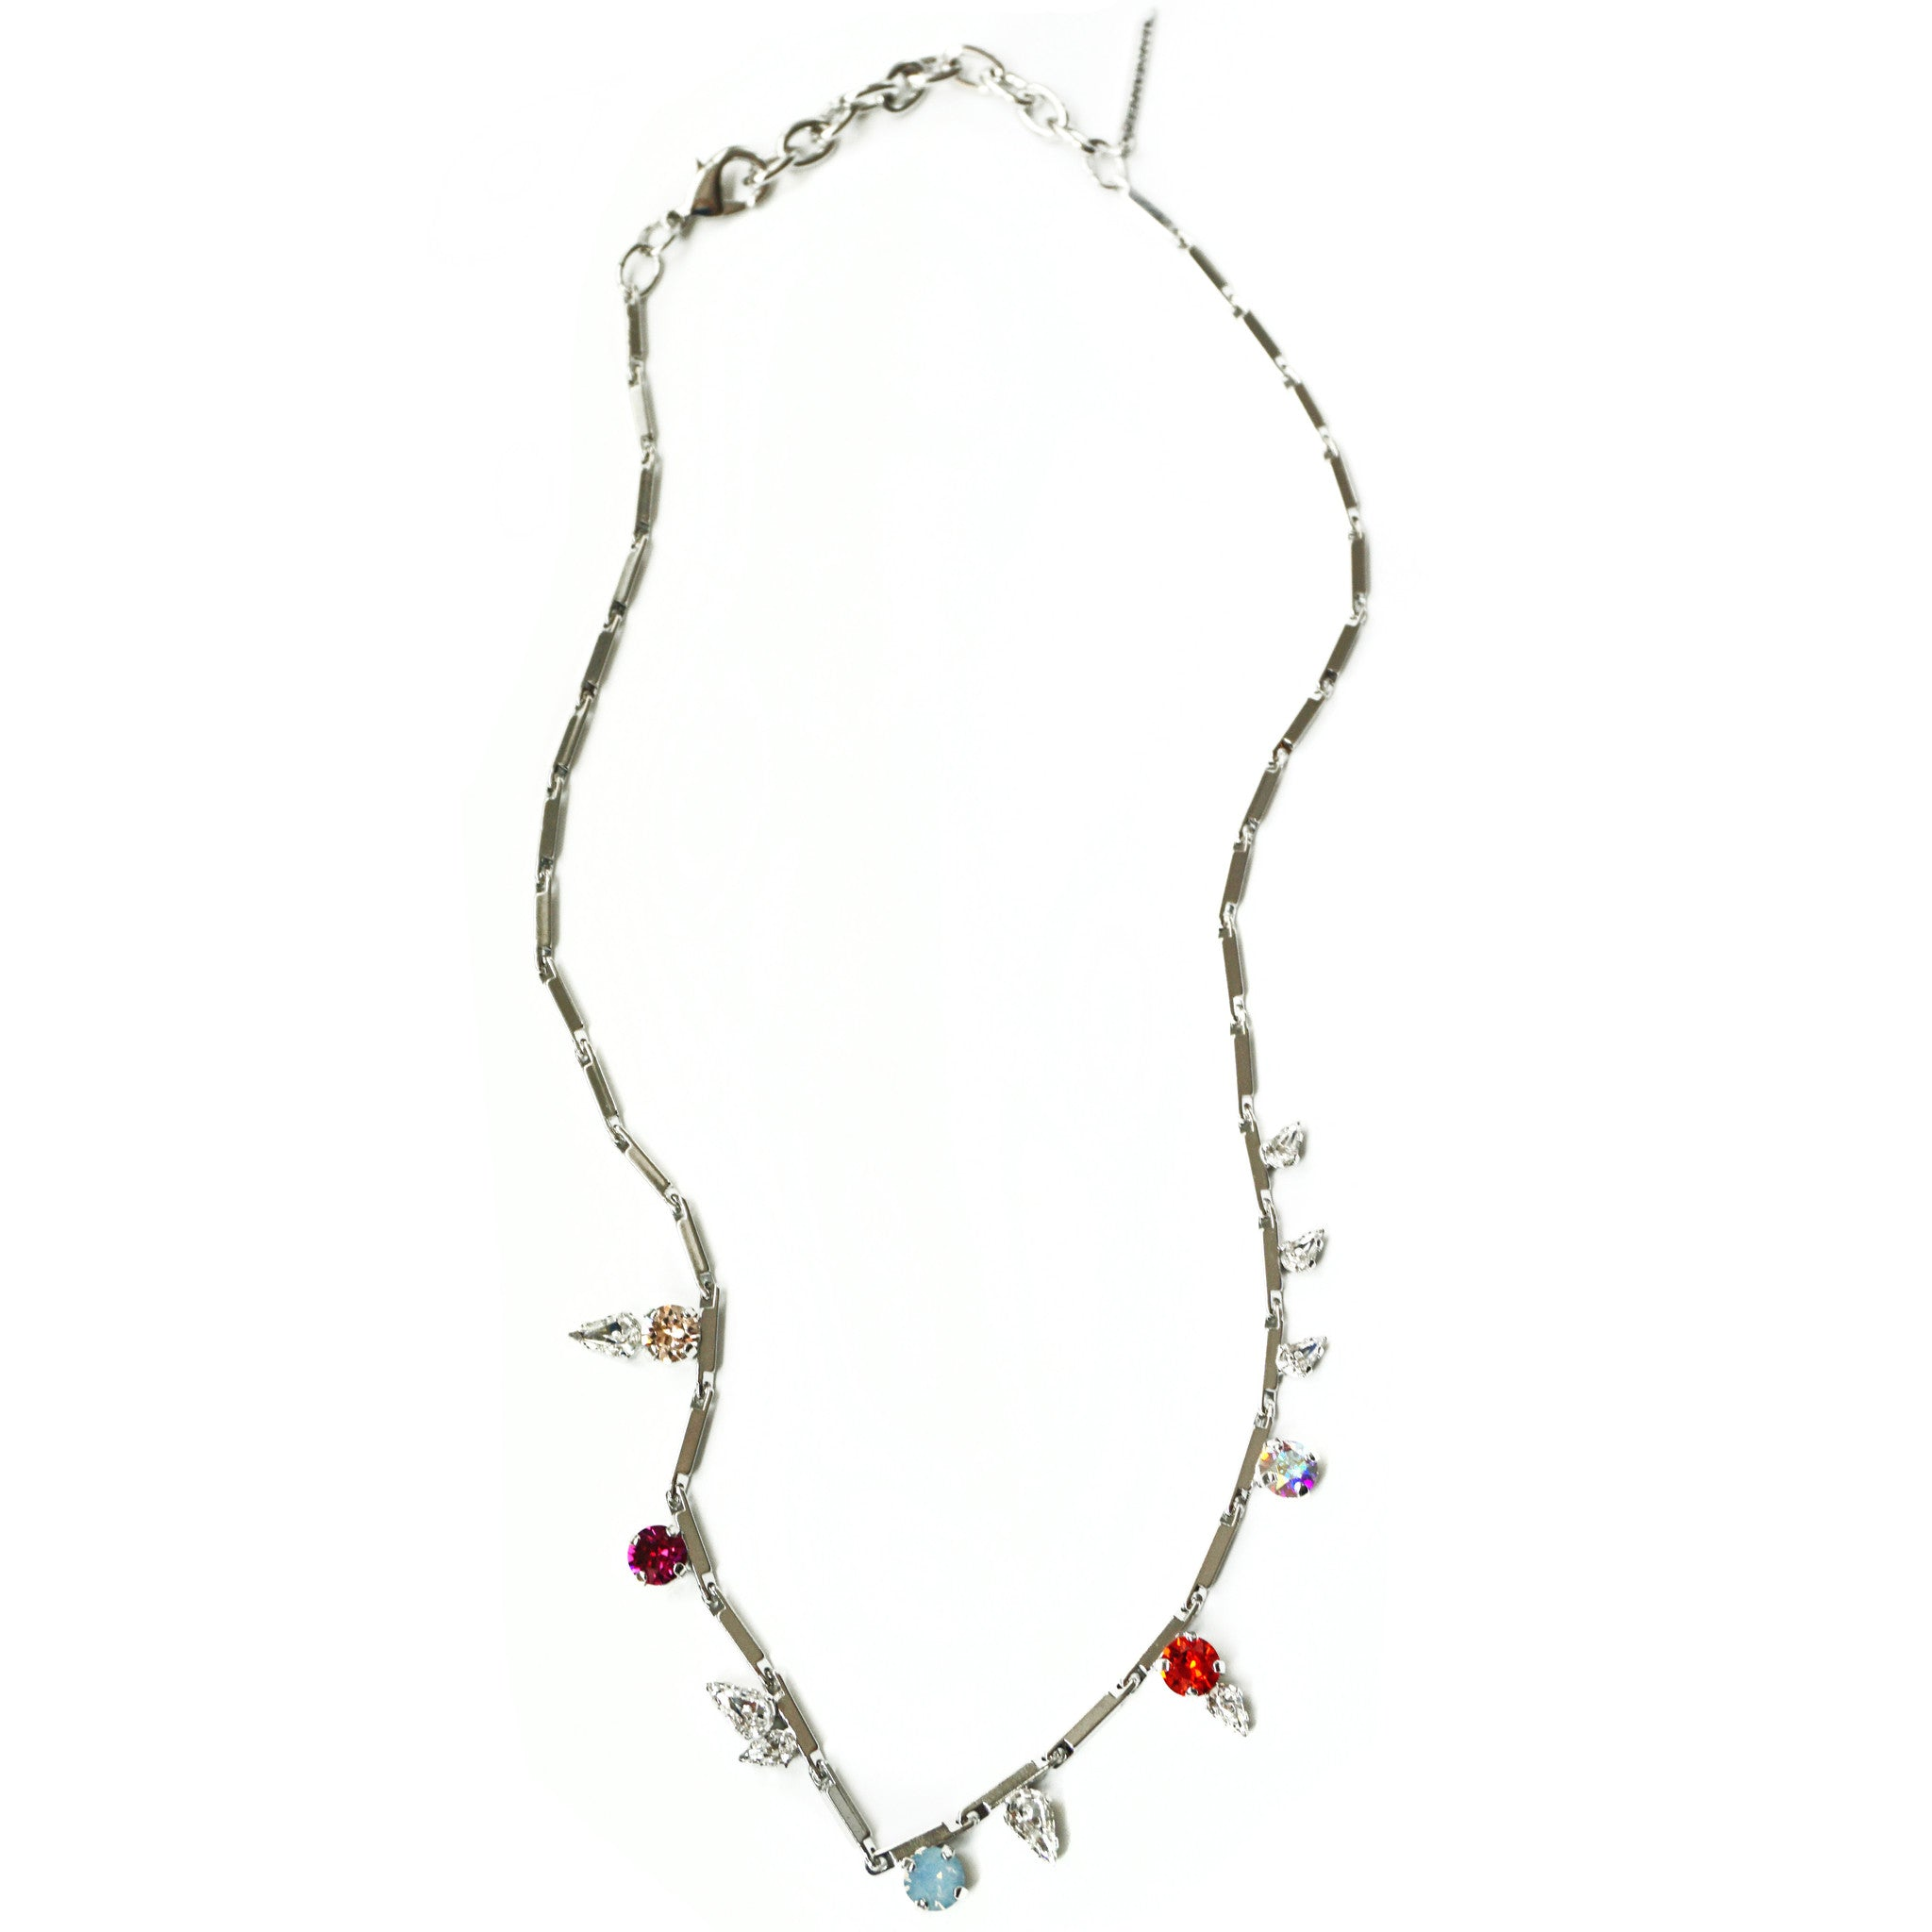 CAROLYN COLBY - SILVER GEM NECKLACE